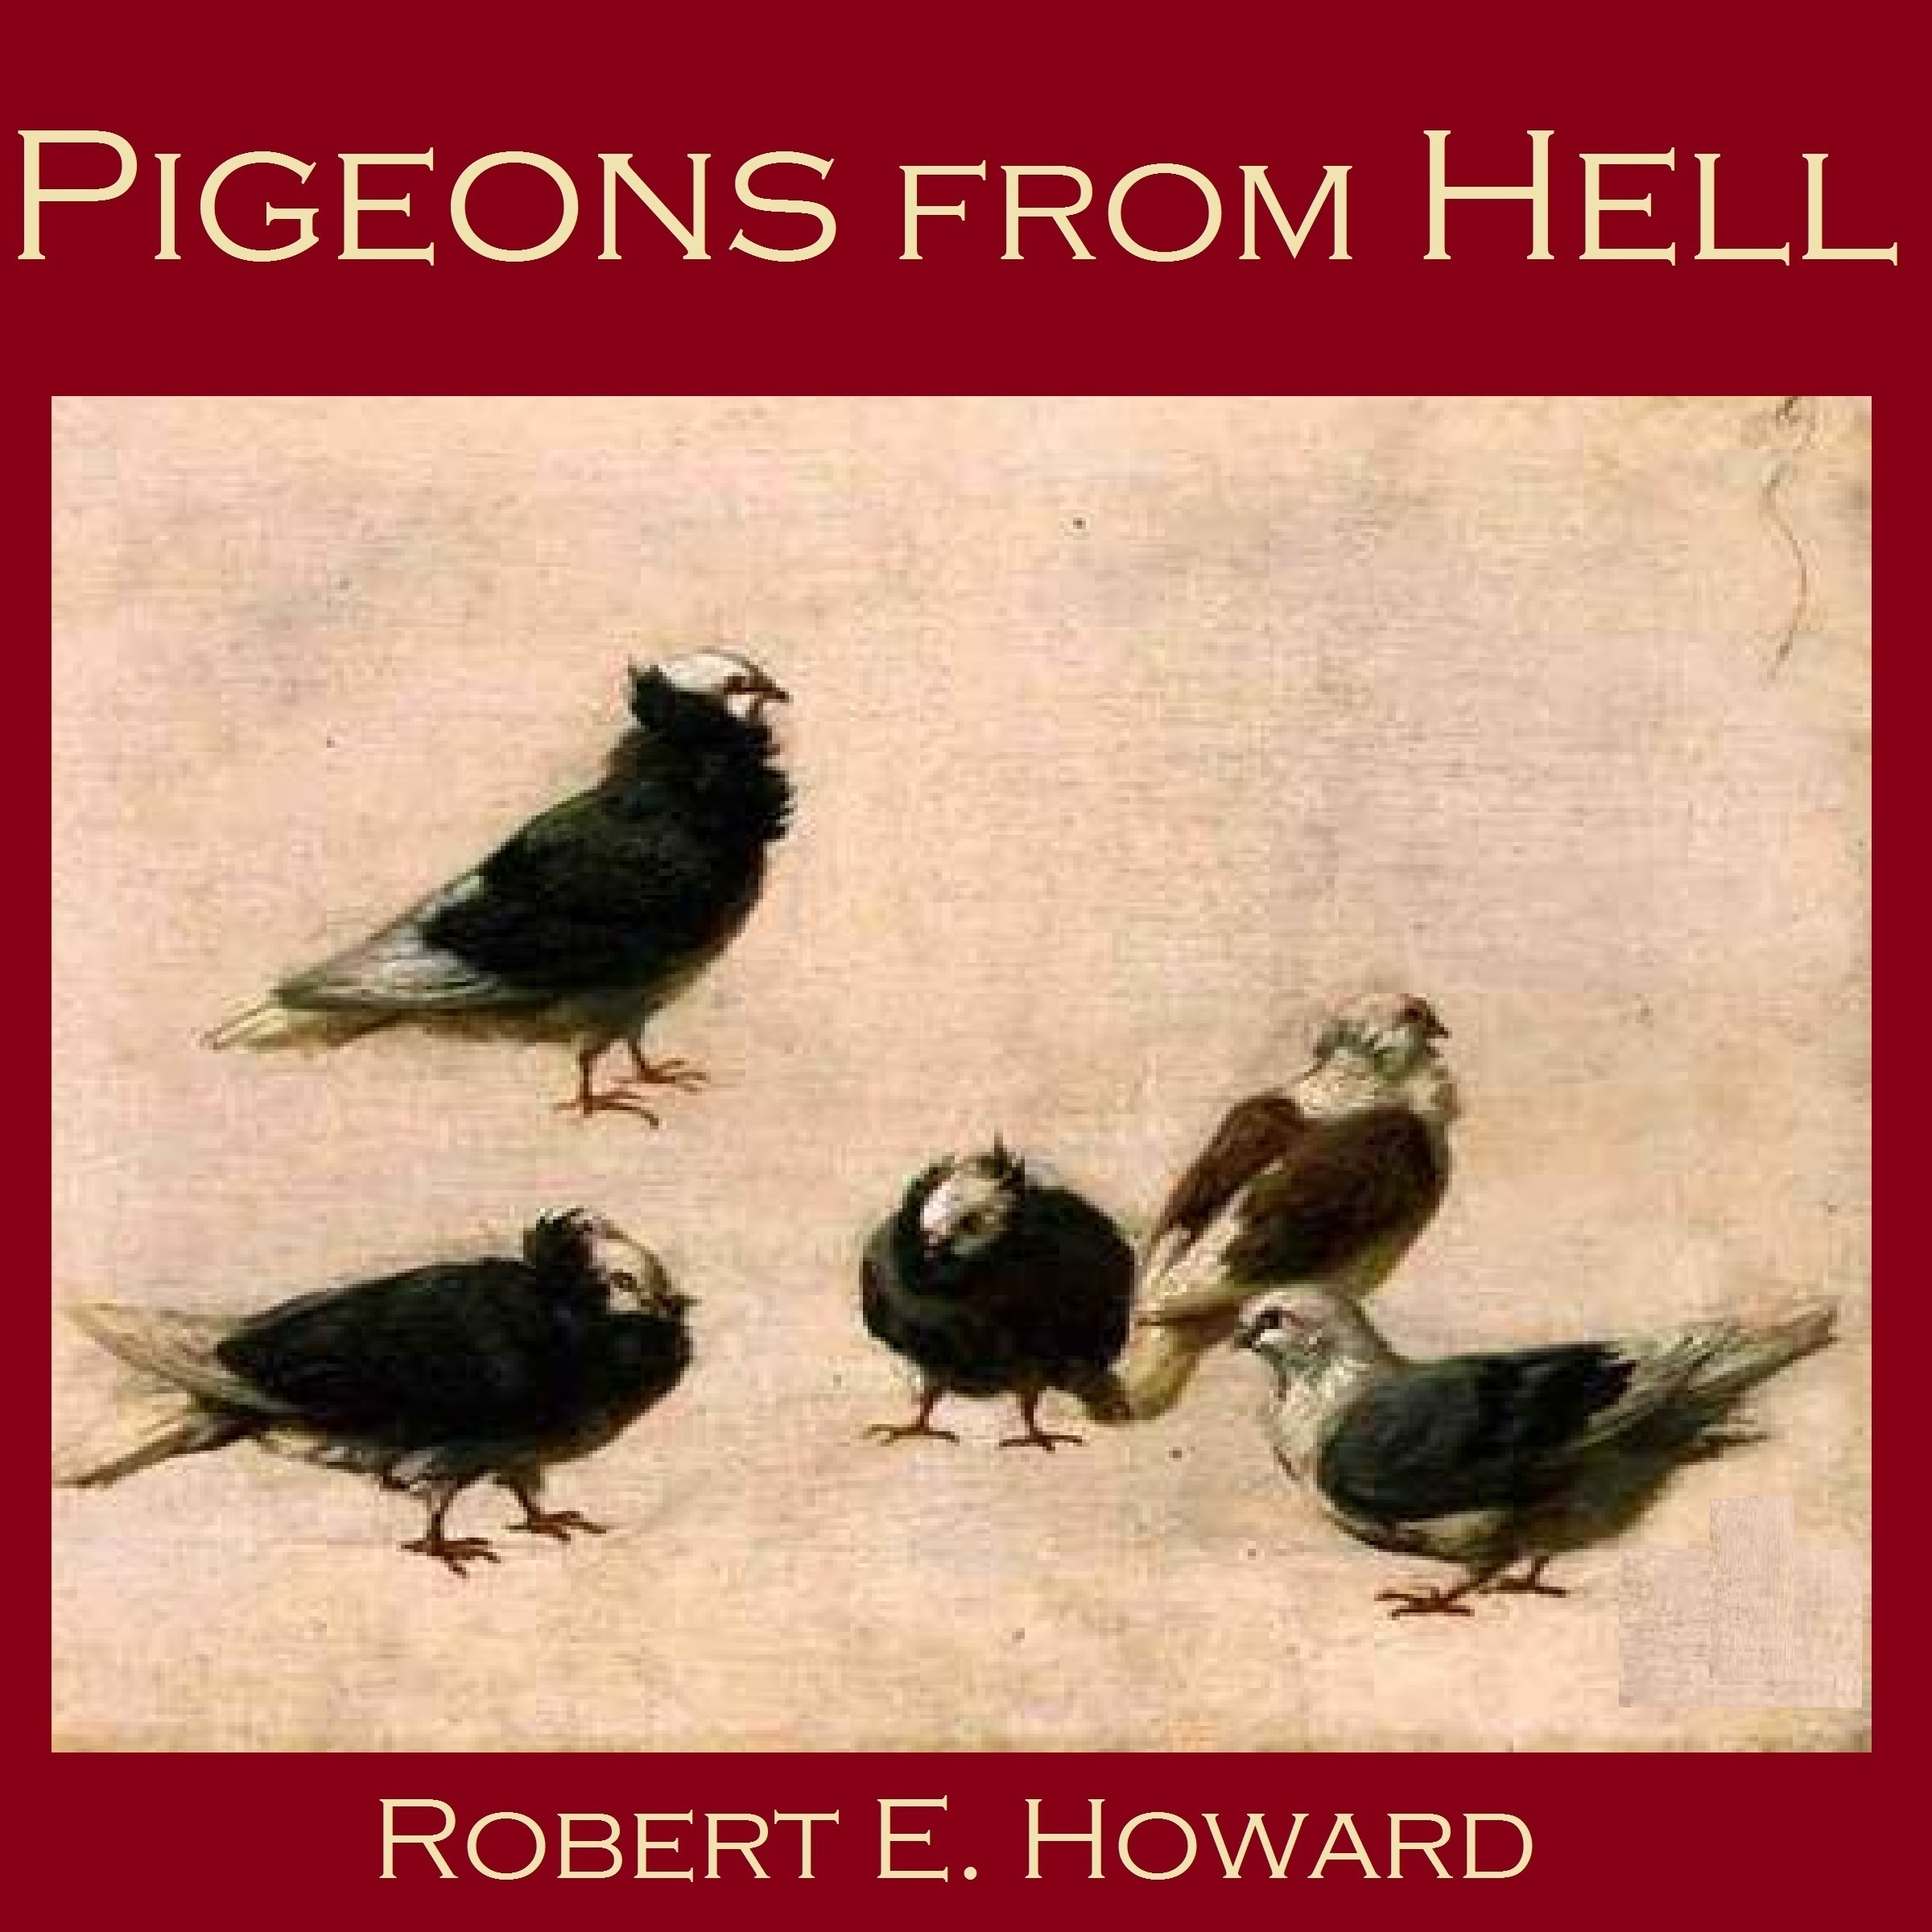 Printable Pigeons from Hell Audiobook Cover Art